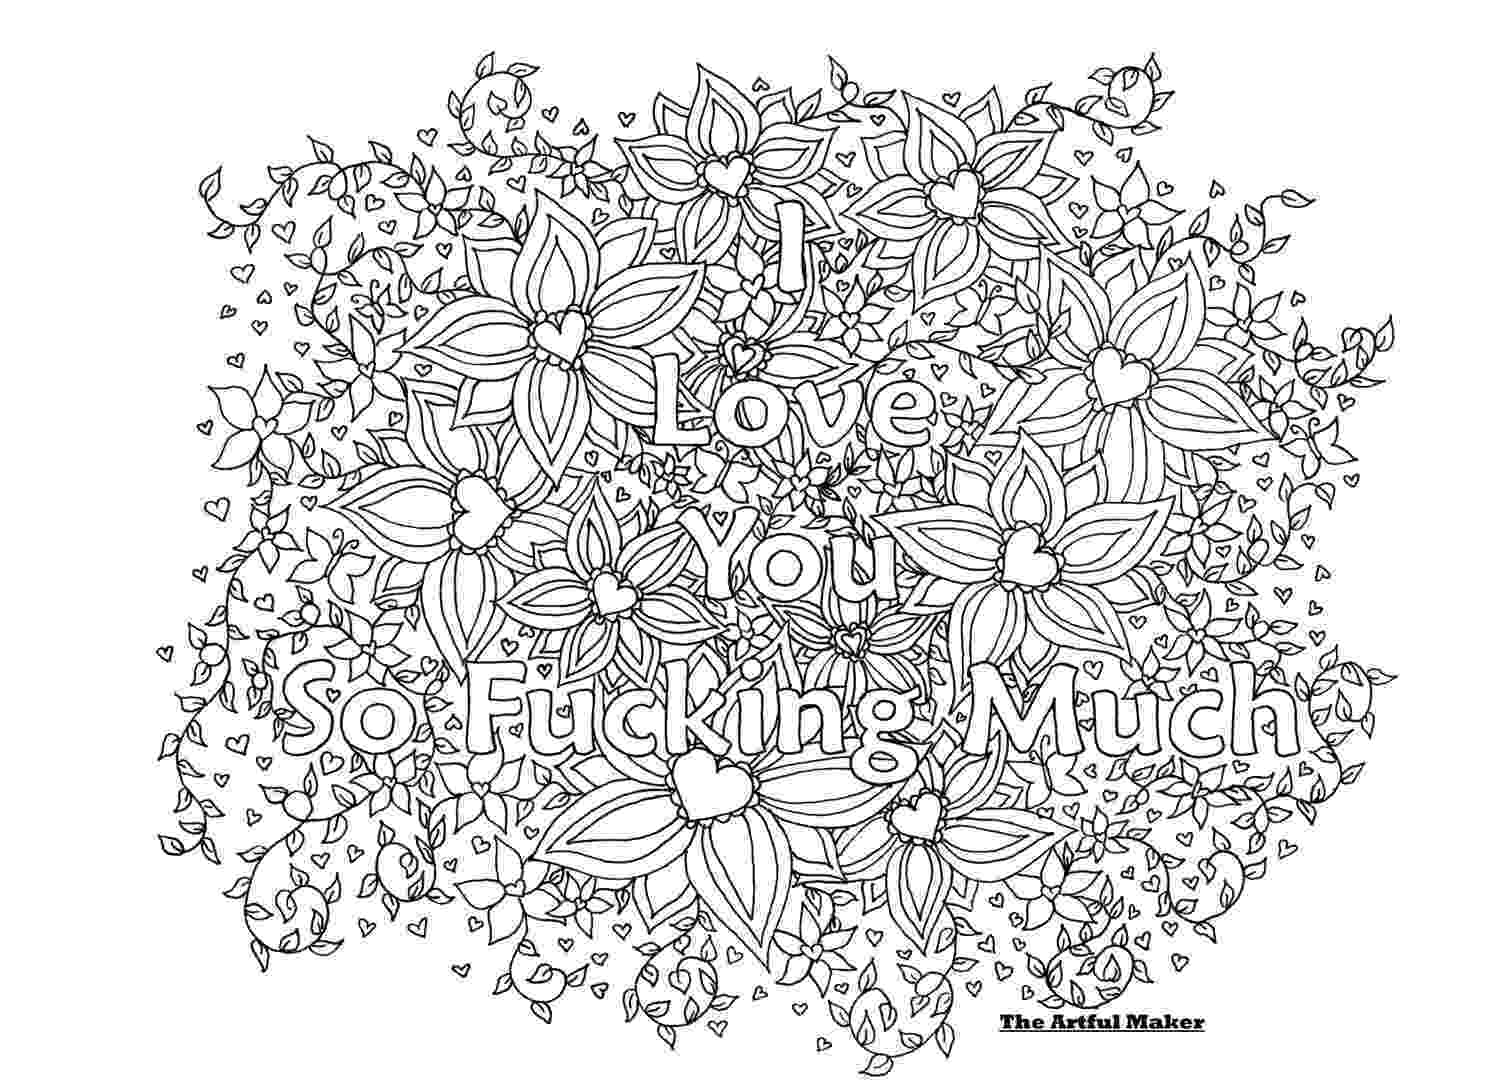 printable coloring pages for adults love love me coloring page free printable ebook love printable love coloring for pages adults